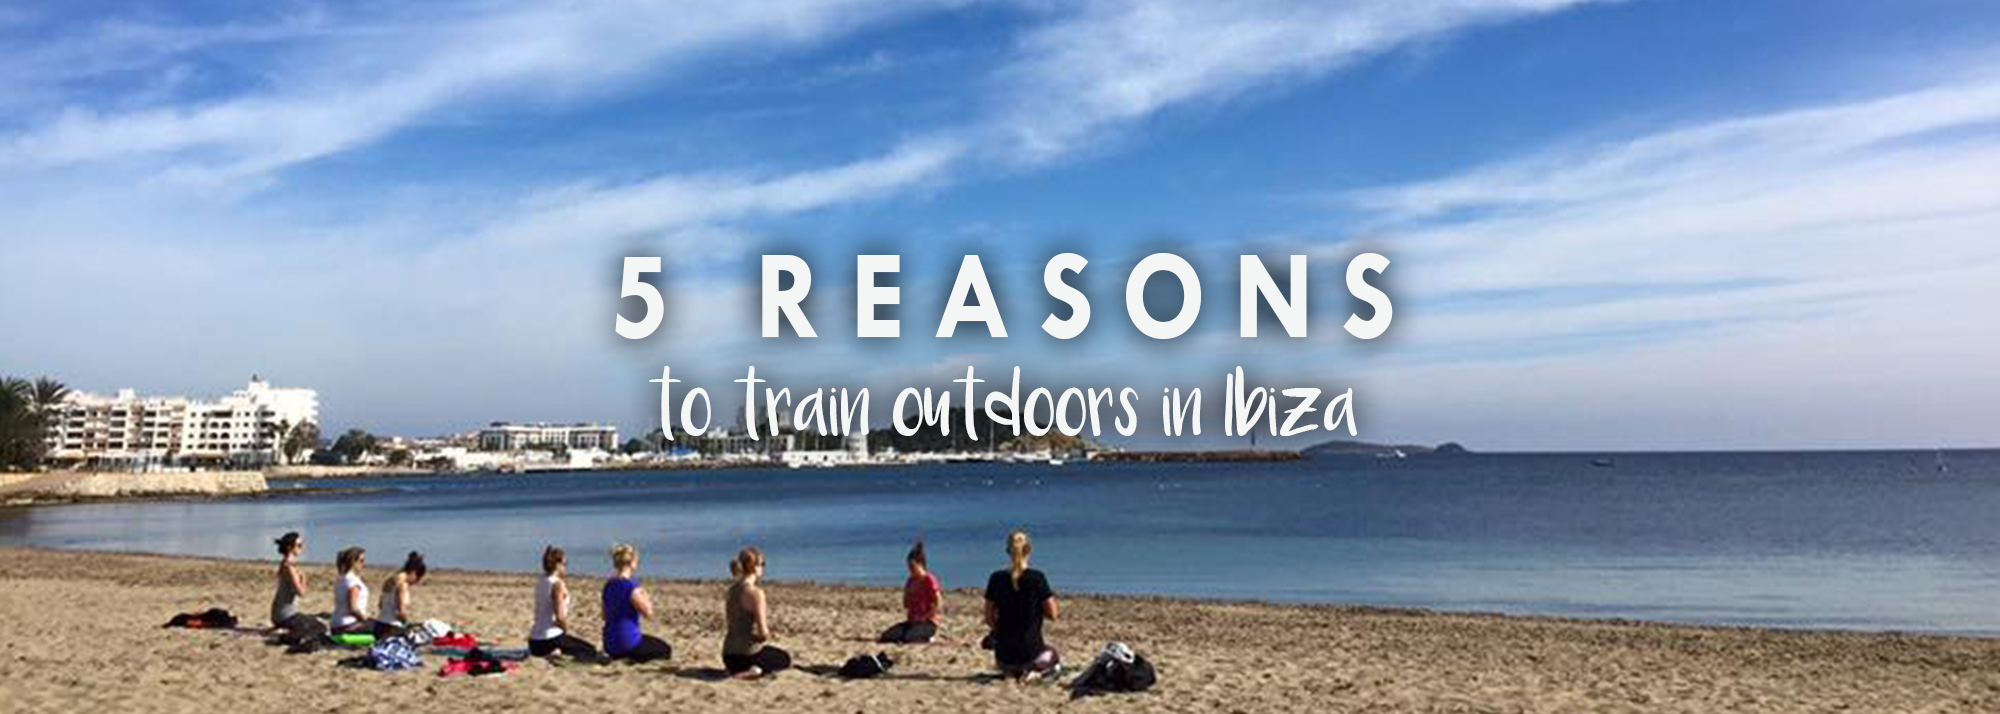 5 Reasons To Train Outdoors In Ibiza